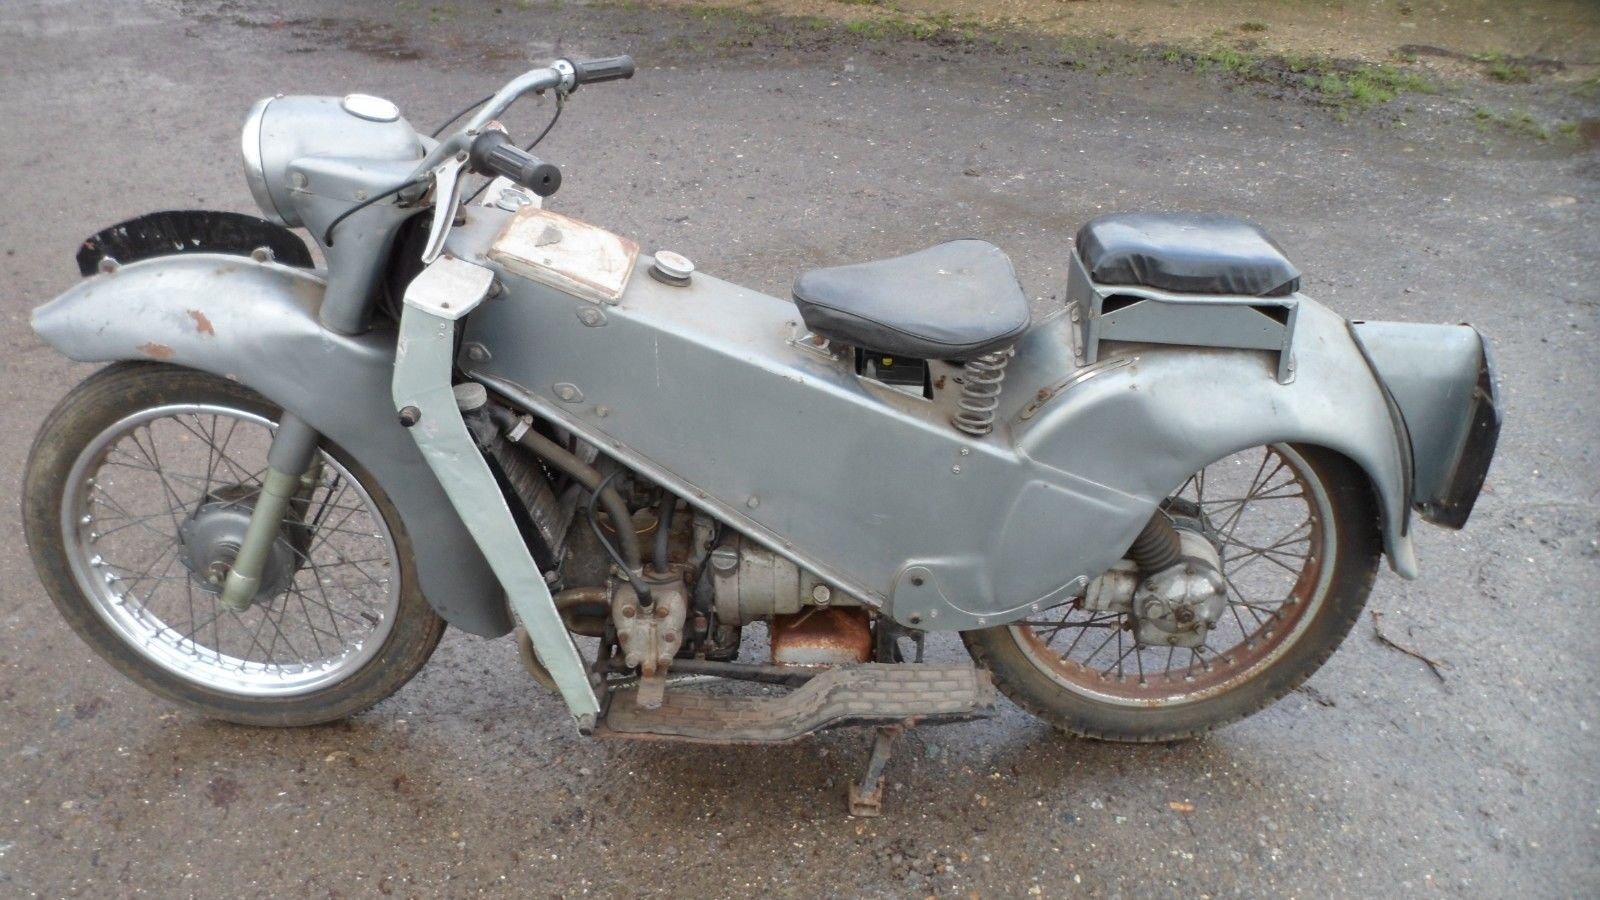 VELOCETTE LE mK3 1967 CLASSIC MOTORCYCLE barn find project